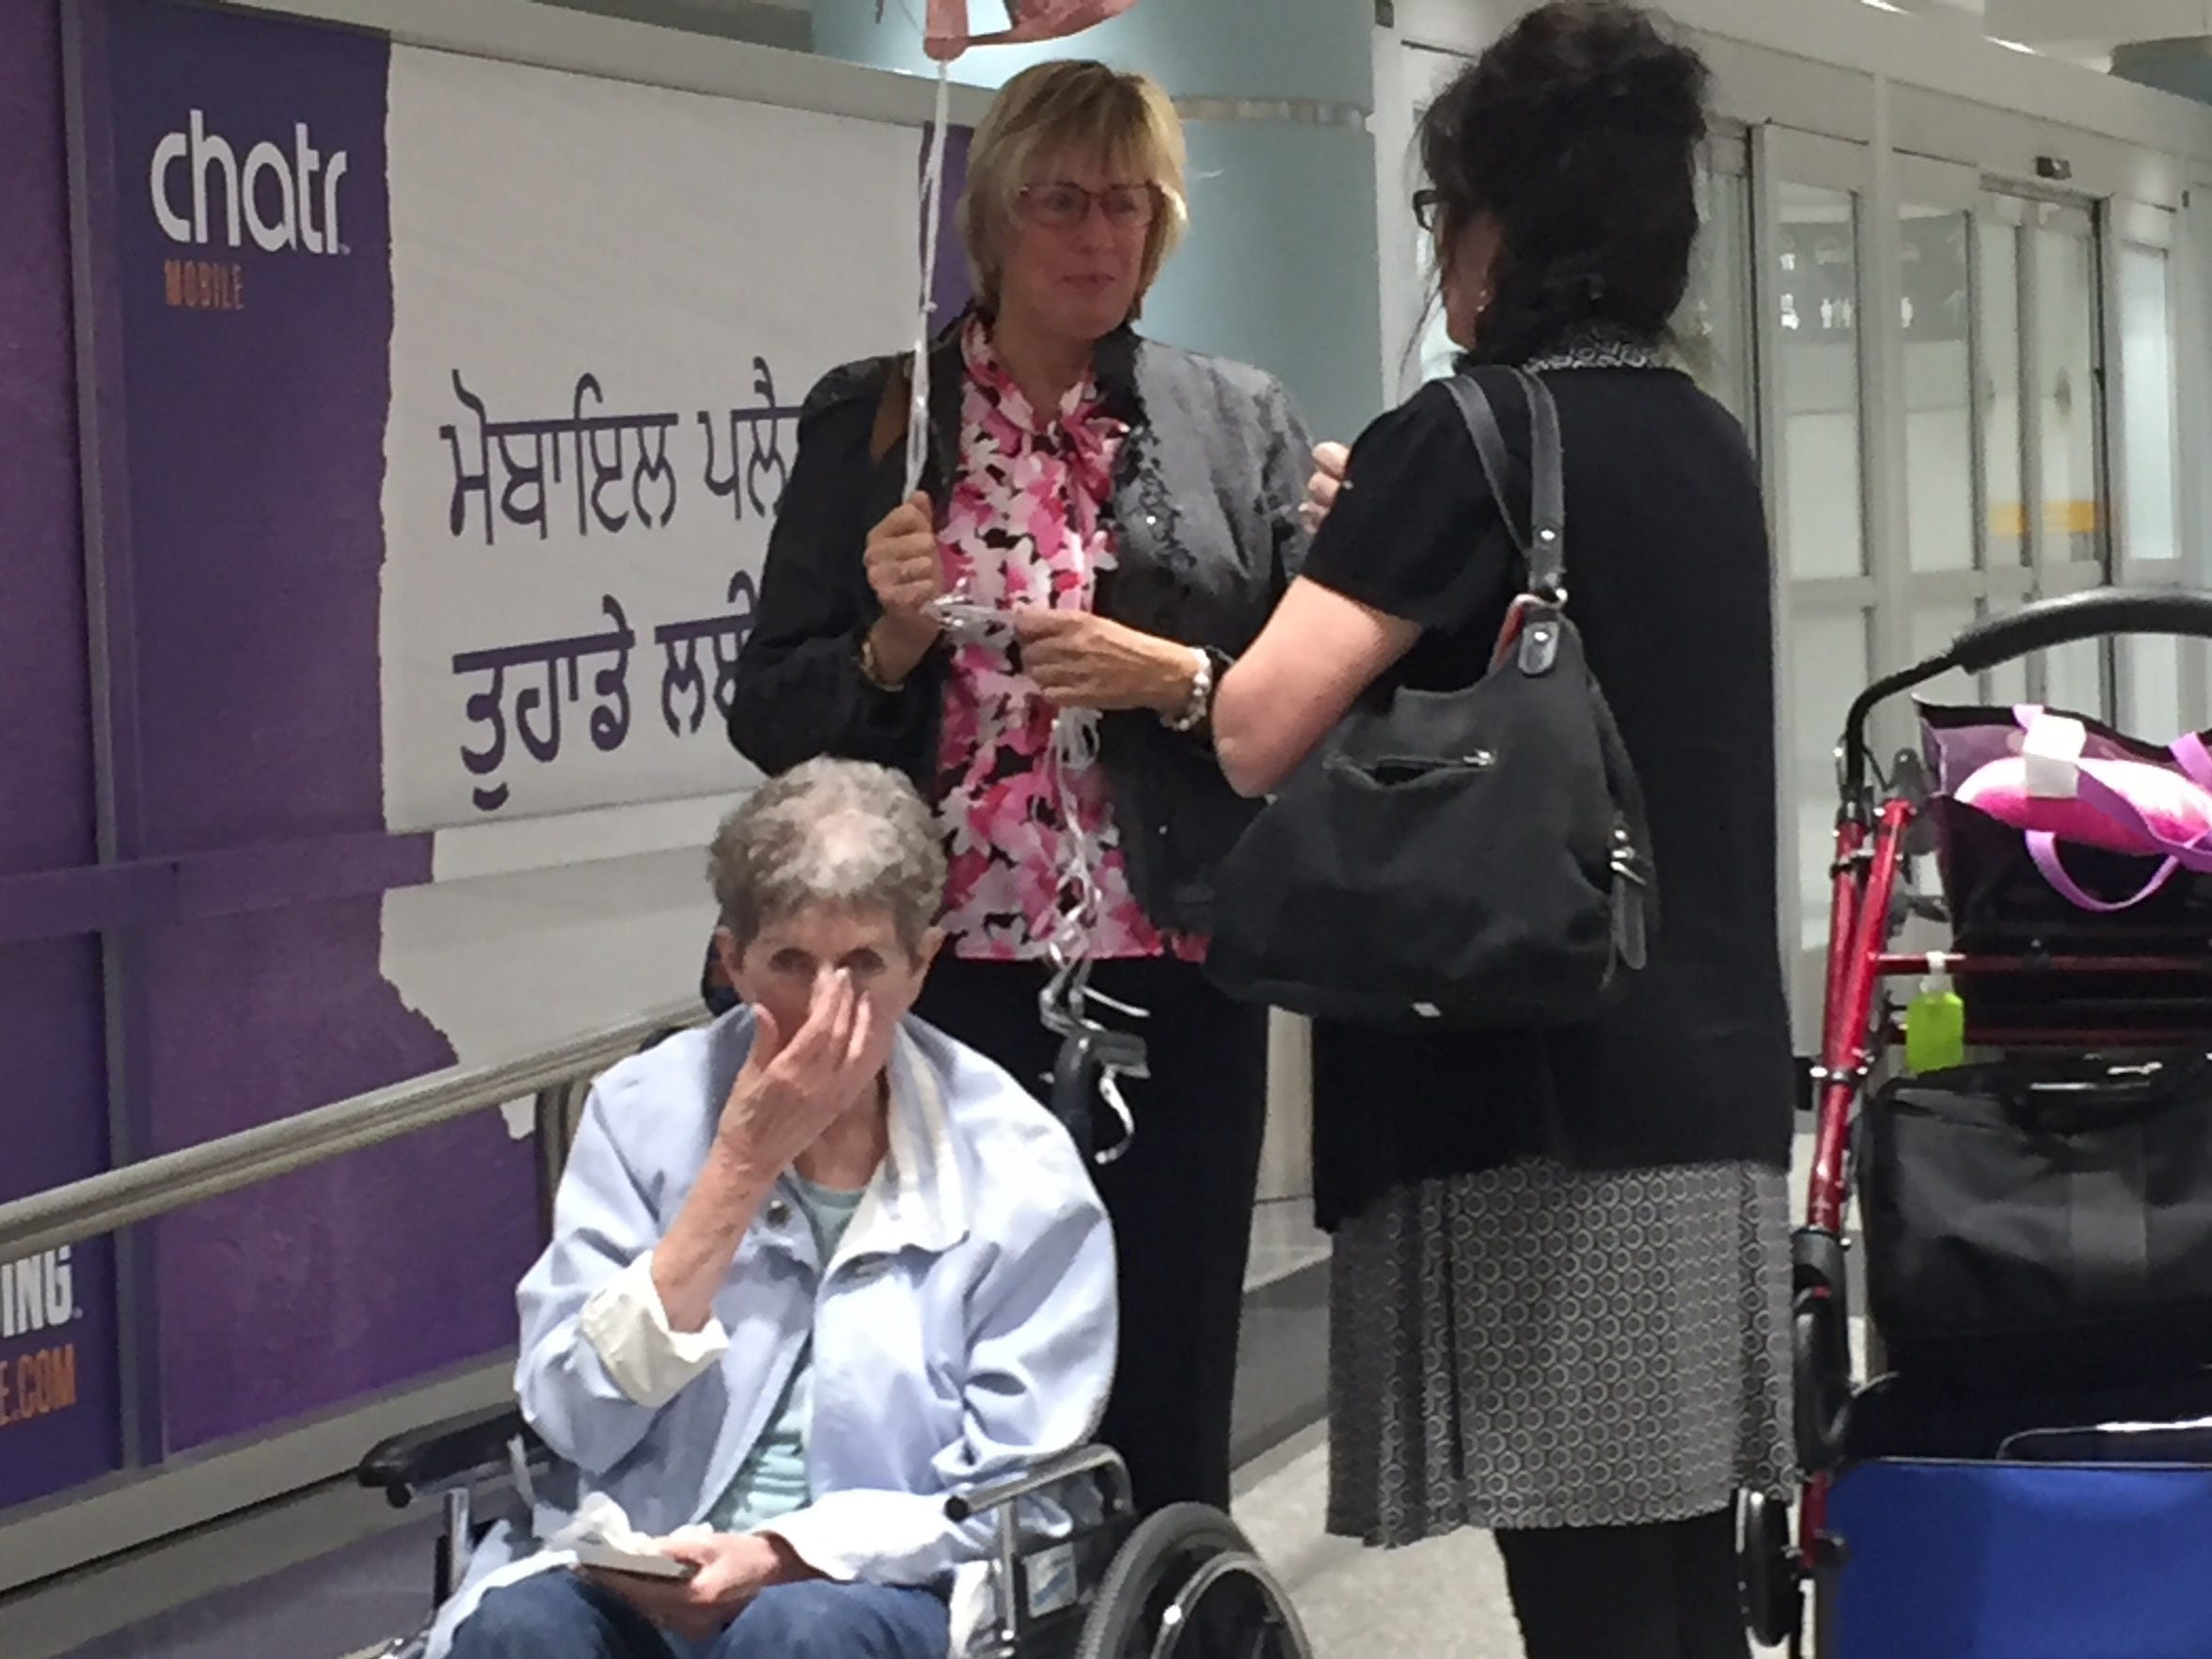 Kathy Kirkland (top left) and her birth mother, Joan Harrison (seated) met in person for the first time in late 2017 at the Toronto Airport.